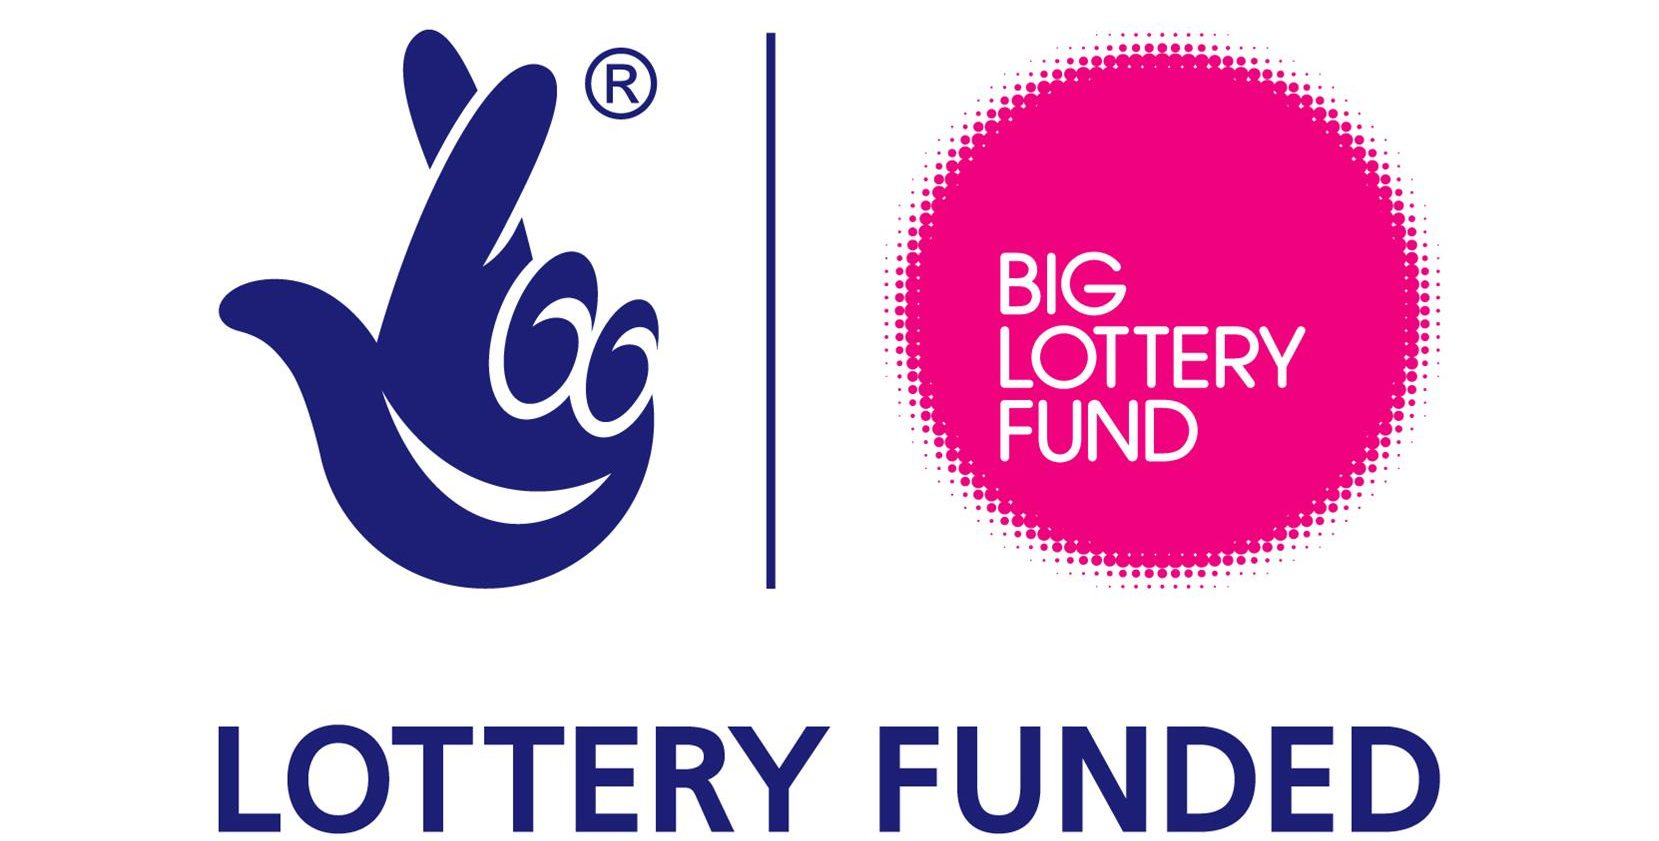 Big lottery fund blue pink